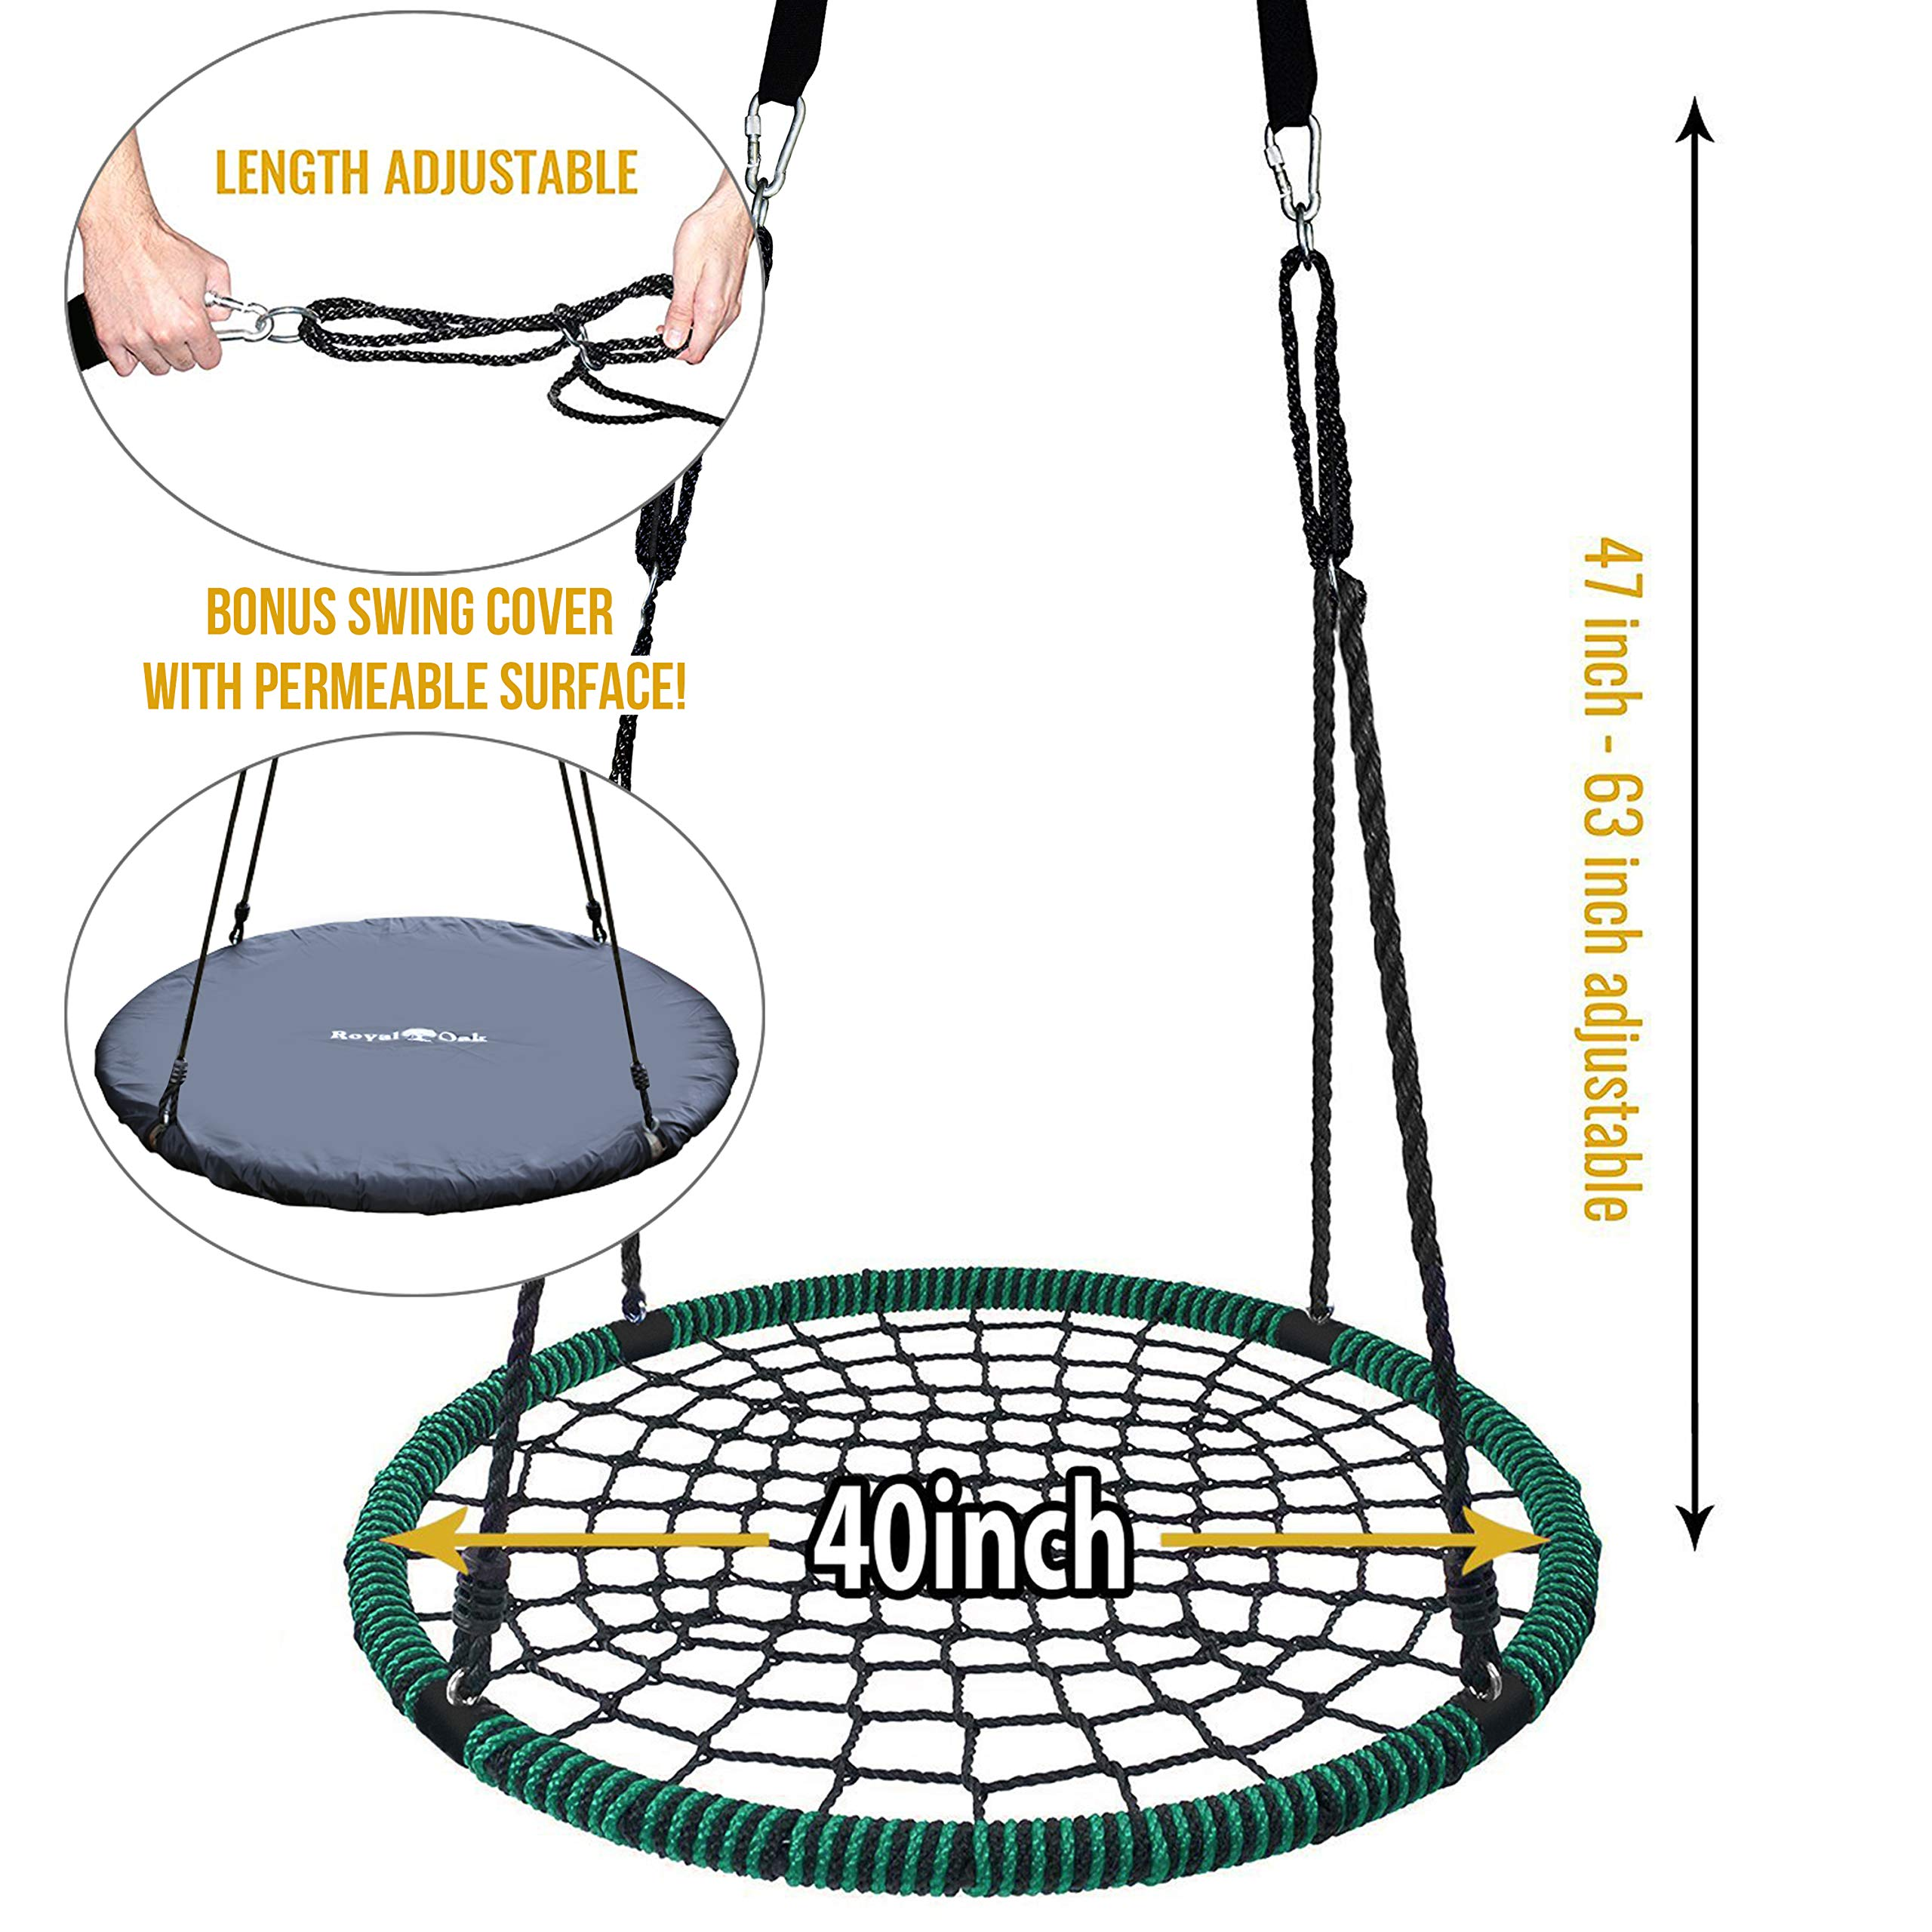 Royal Oak Giant 40'' Spider Web Tree Swing, 600 lb Weight Capacity, Durable Steel Frame, Waterproof, Adjustable Ropes, Bonus Flag Set and 2 Carabiners, Non-Stop Fun for Kids! by Royal Oak (Image #2)